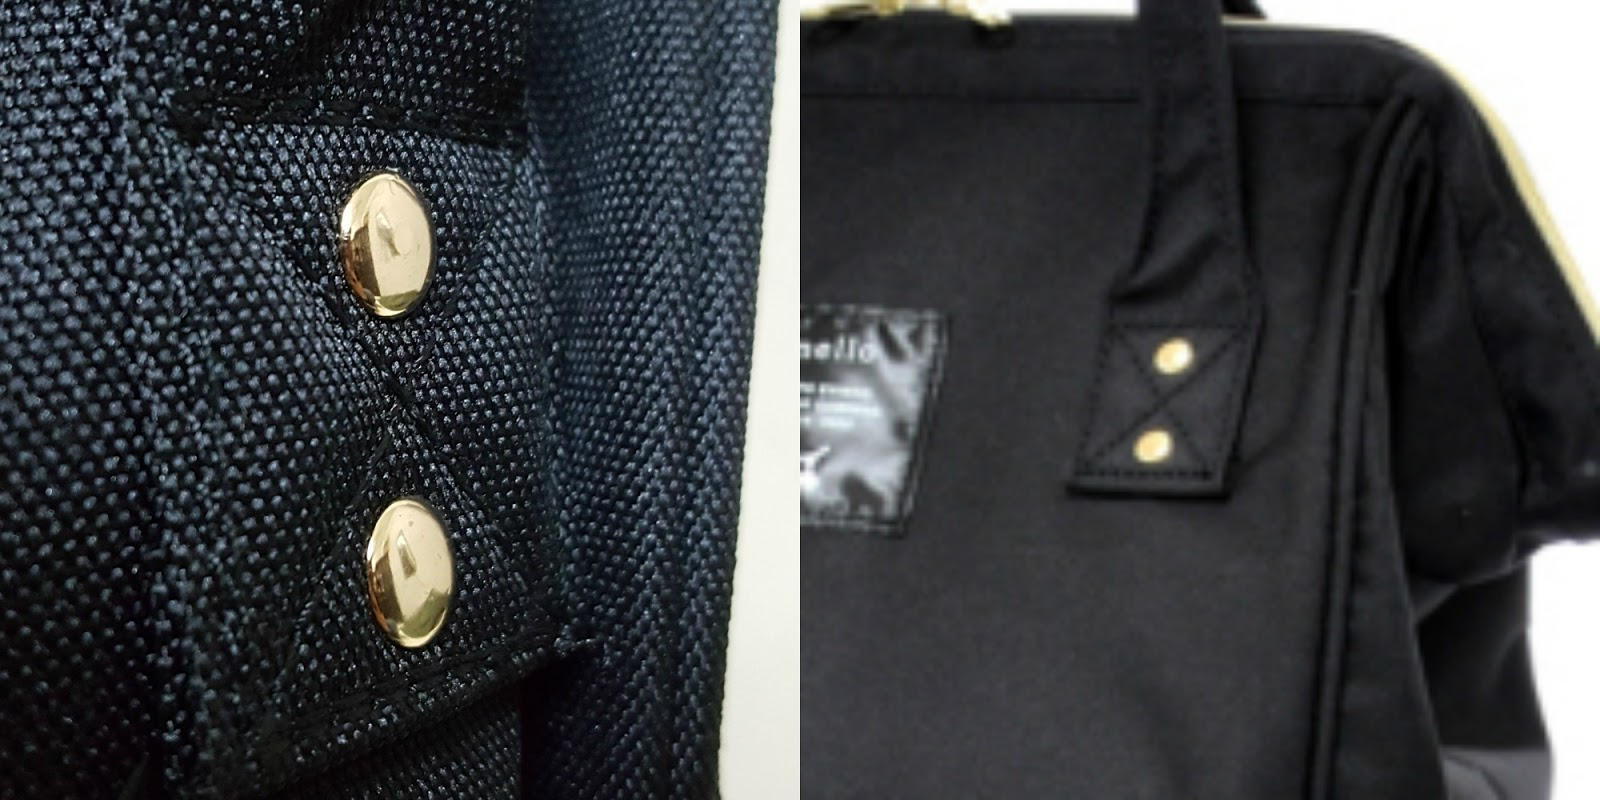 b89fd567b8 BUT! From the pictures on the official site, backpacks have flat rivets as  well: